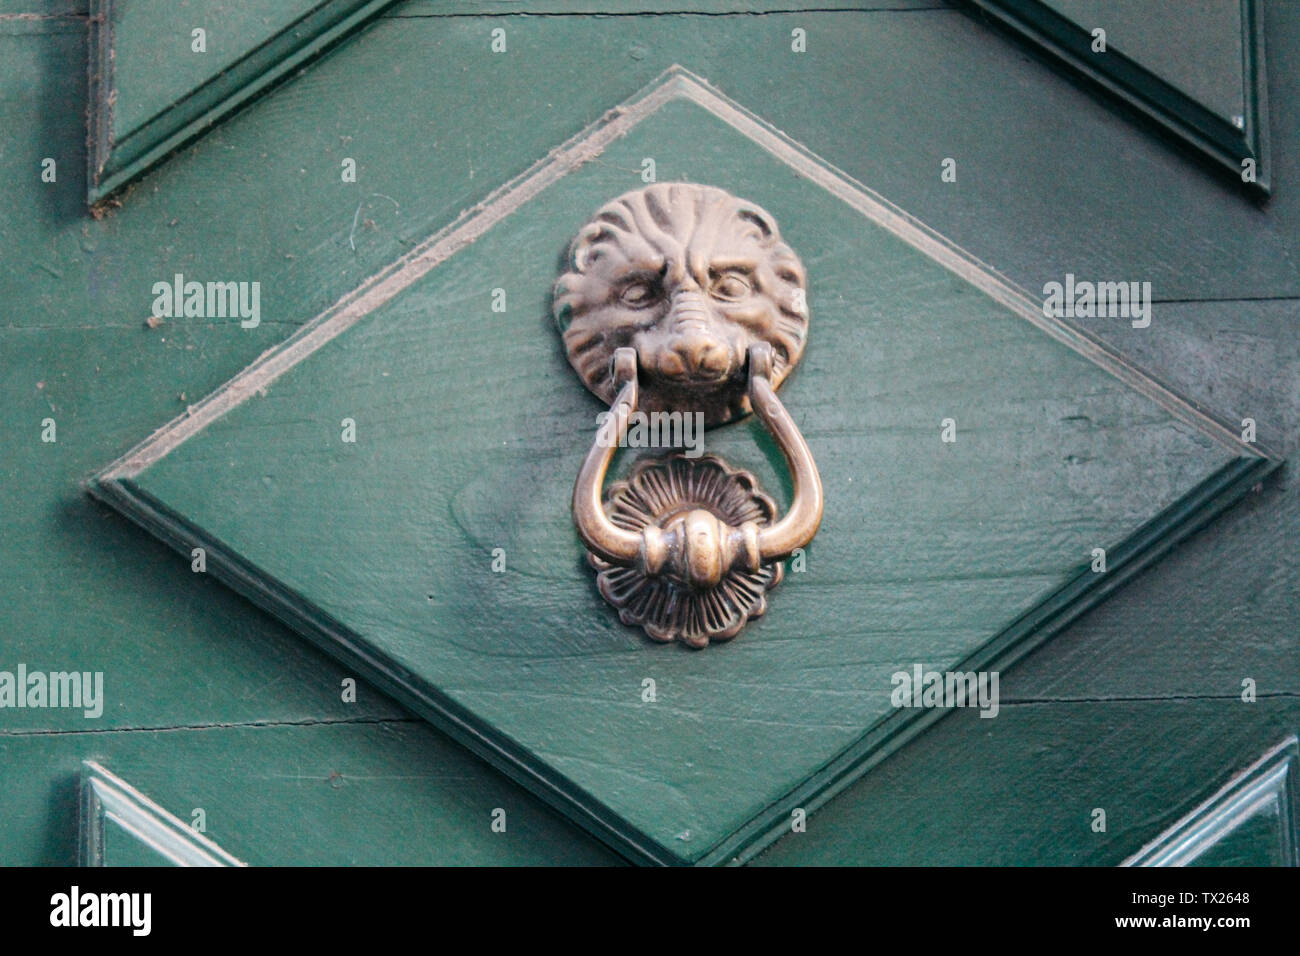 Rapallo, Italy - 03 27 2013: Lion head knocker on the green door. View of the streets of Rapallo. - Stock Image